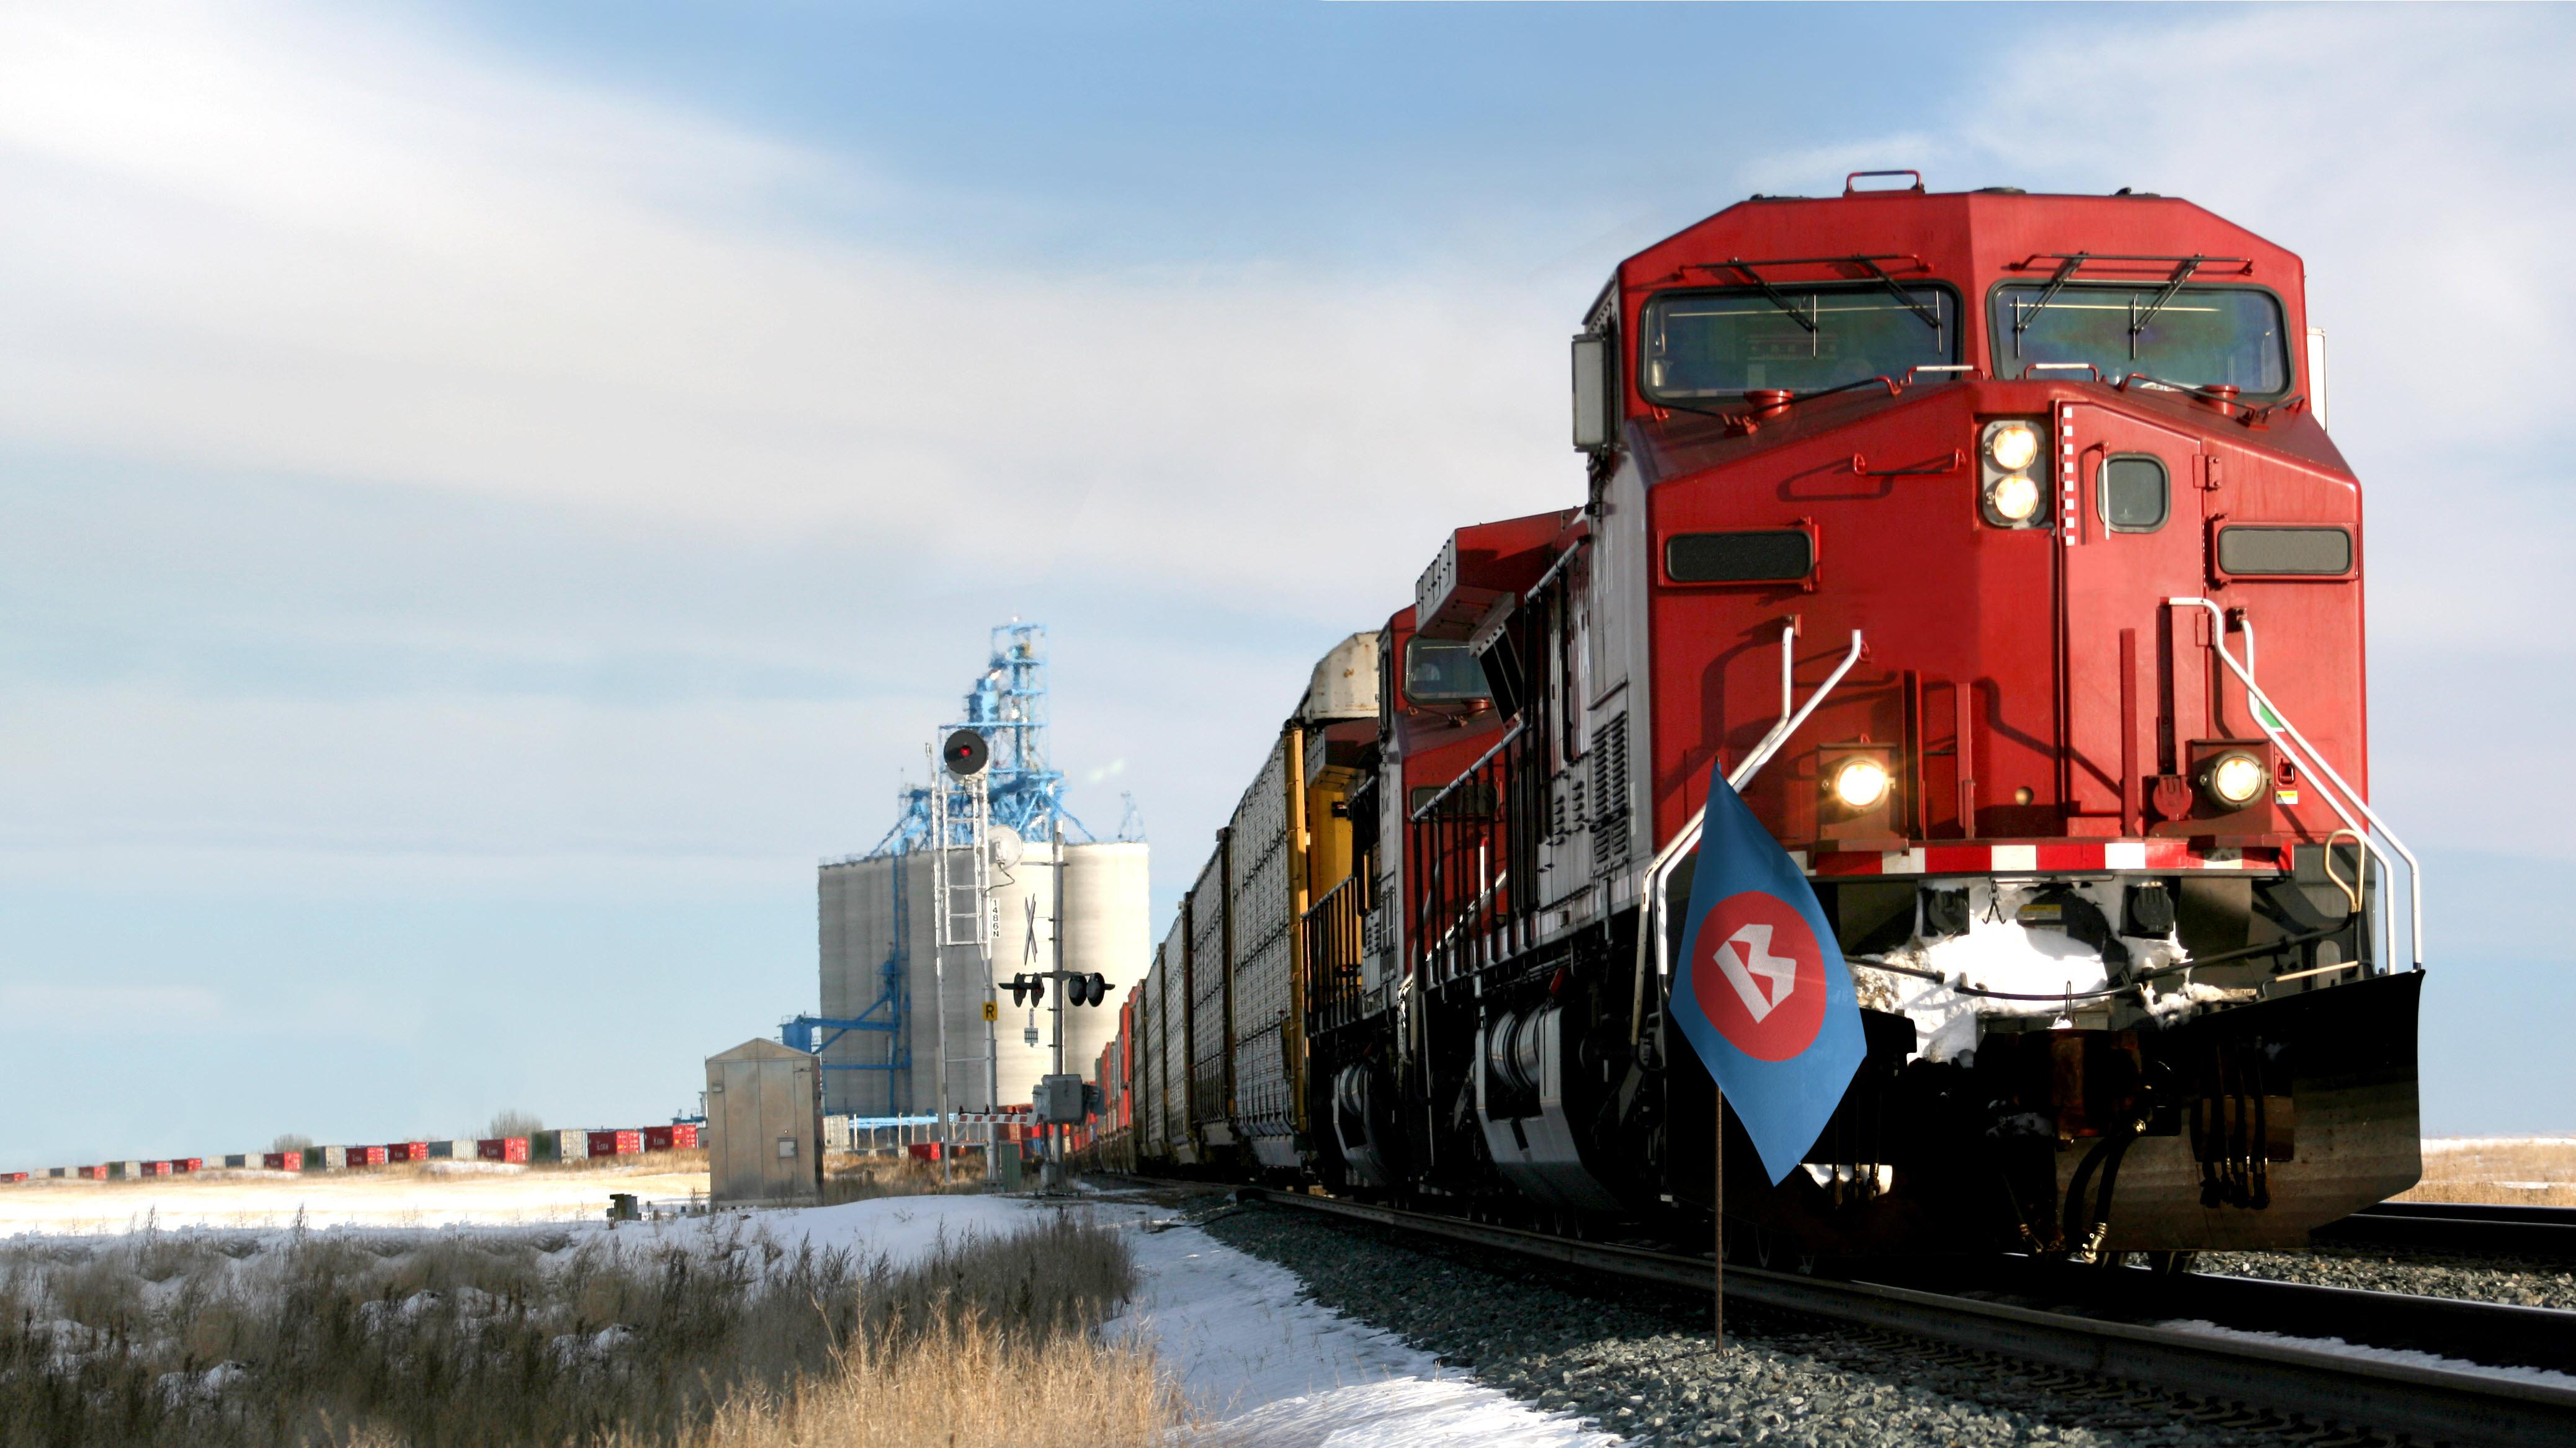 Trains bringing goods from Canada to the US